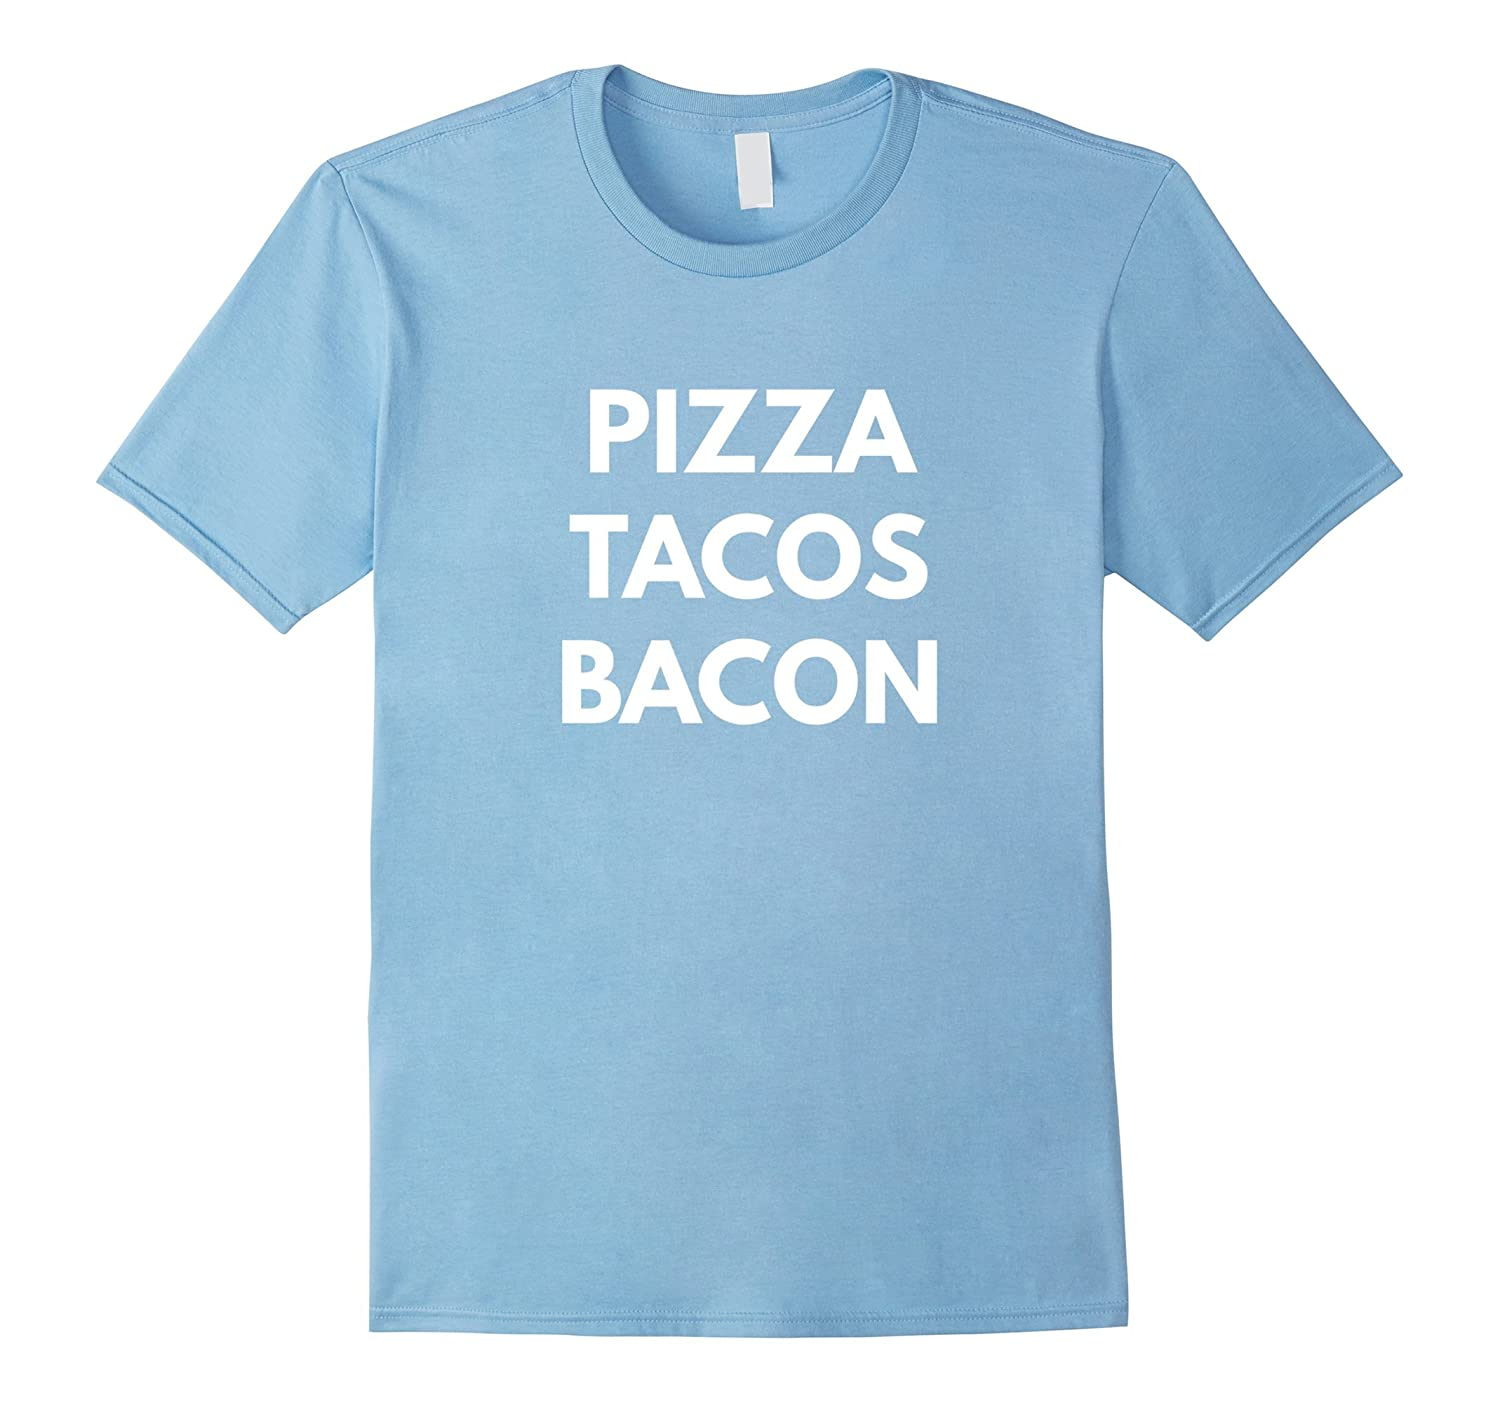 Pizza Tacos Bacon t-shirt - Body By Bacon-TH